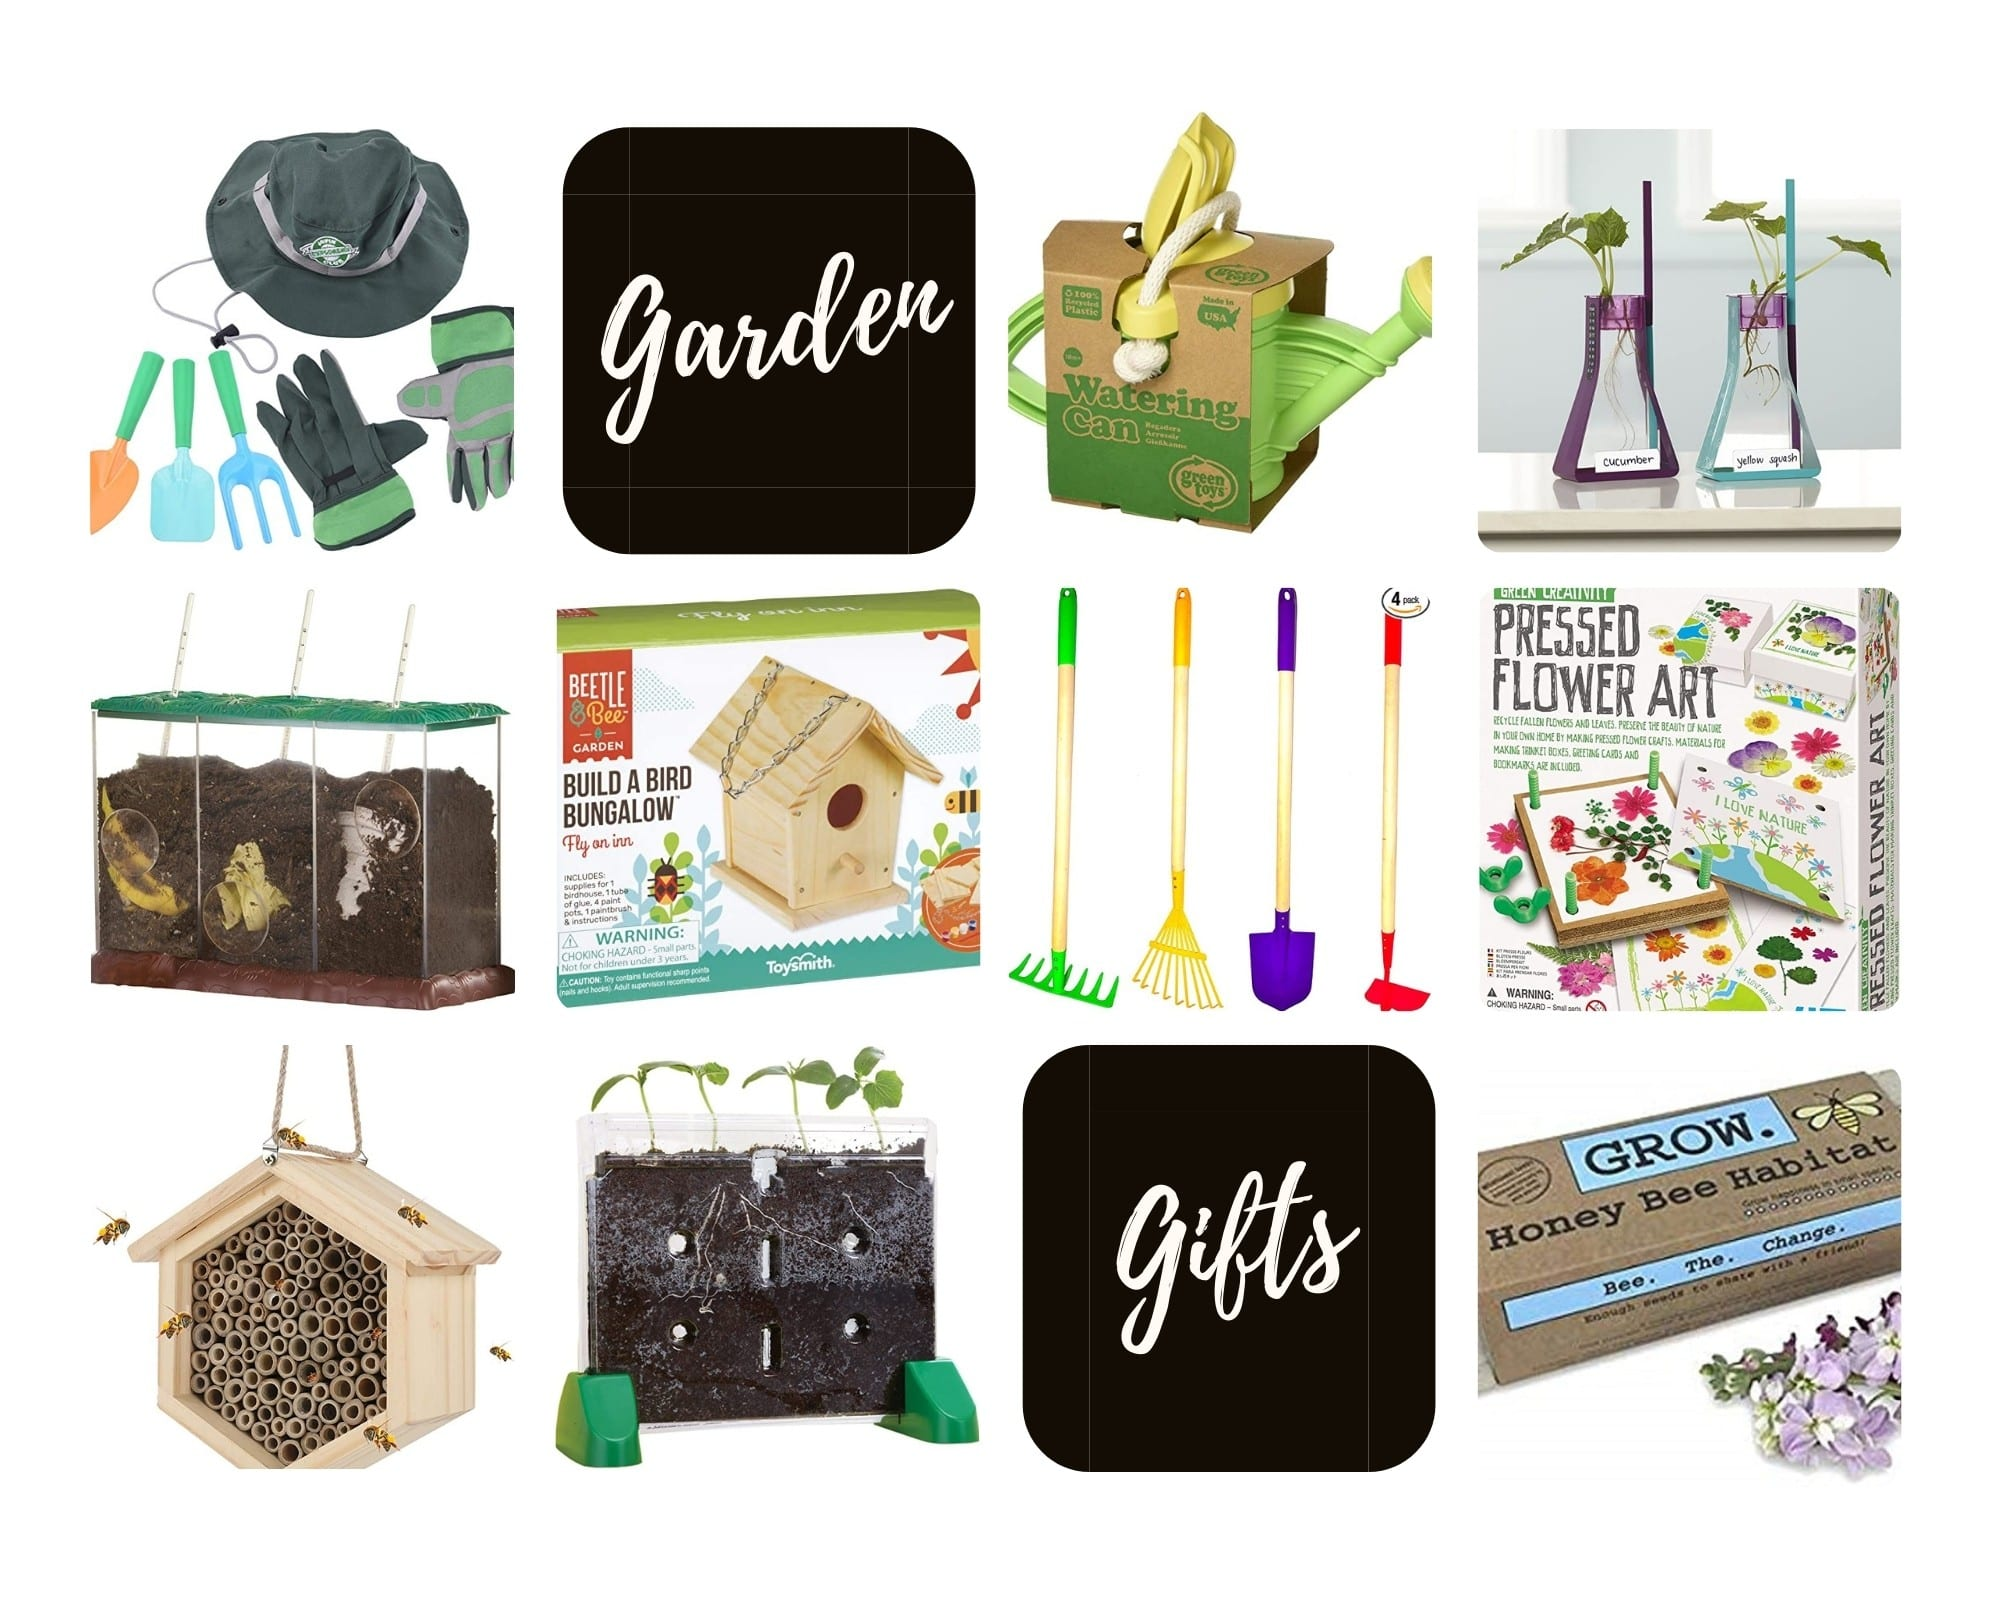 Product Images of all 10 Garden Gift Ideas